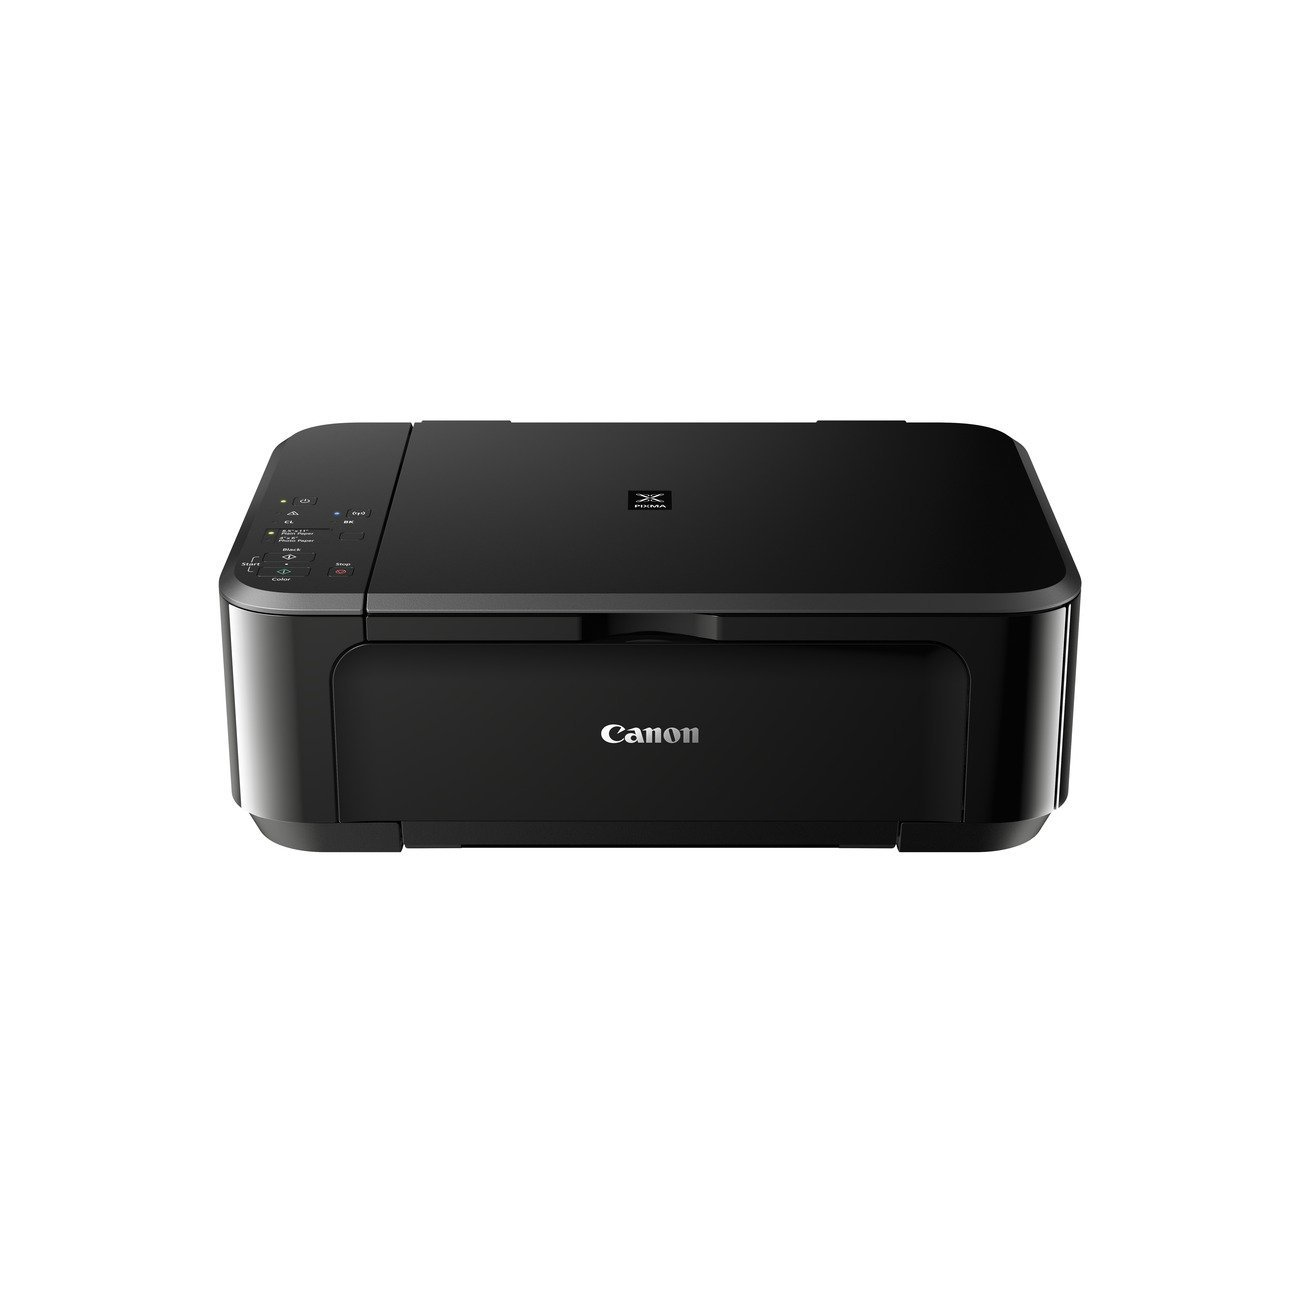 Canon Drucker amazon